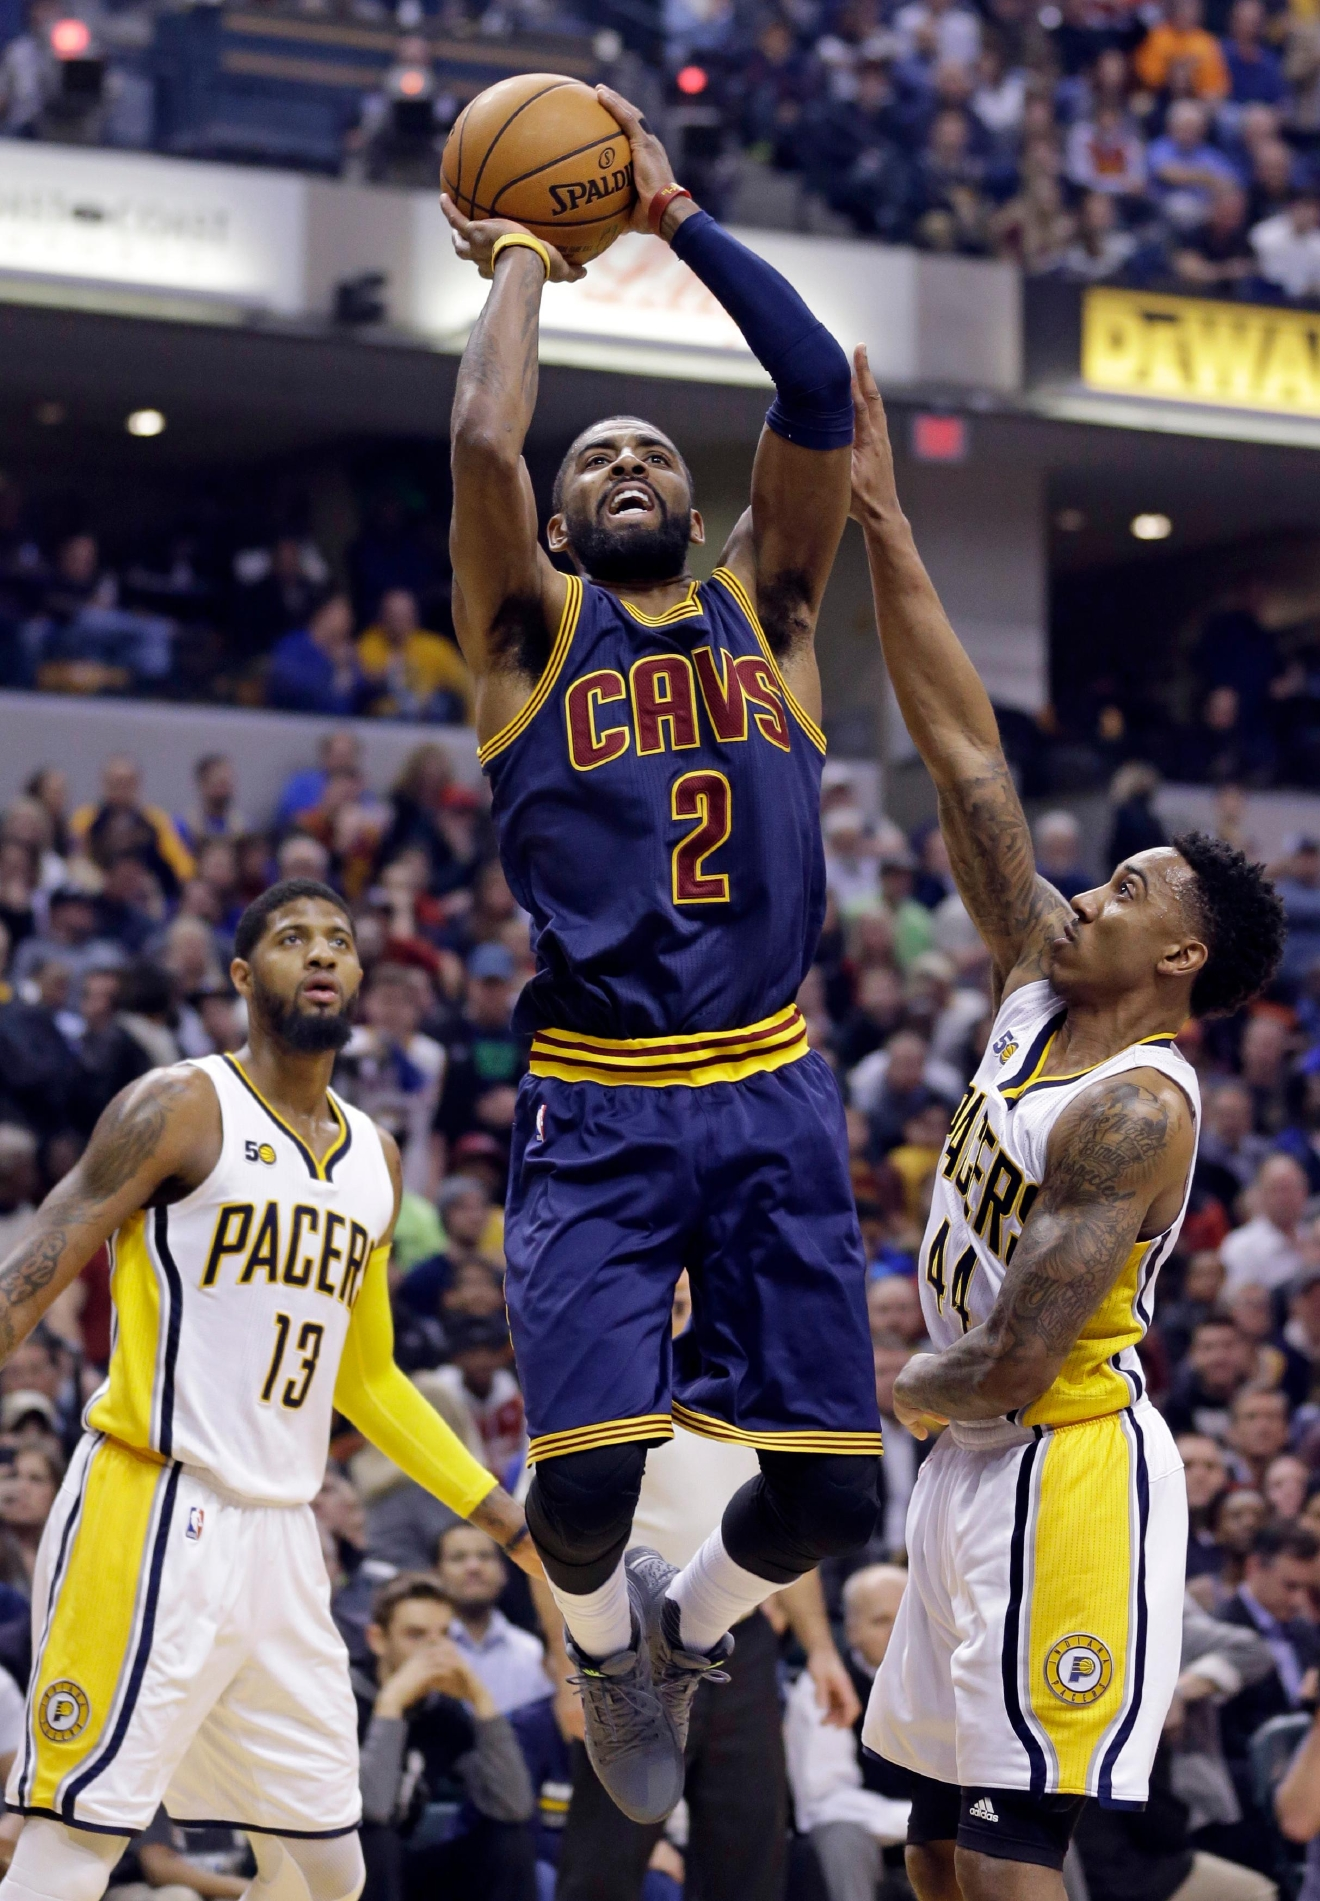 Cleveland Cavaliers guard Kyrie Irving (2) shoots between Indiana Pacers forward Paul George (13) and guard Jeff Teague (44) during the first half of an NBA basketball game in Indianapolis, Wednesday, Feb. 8, 2017. (AP Photo/Michael Conroy)